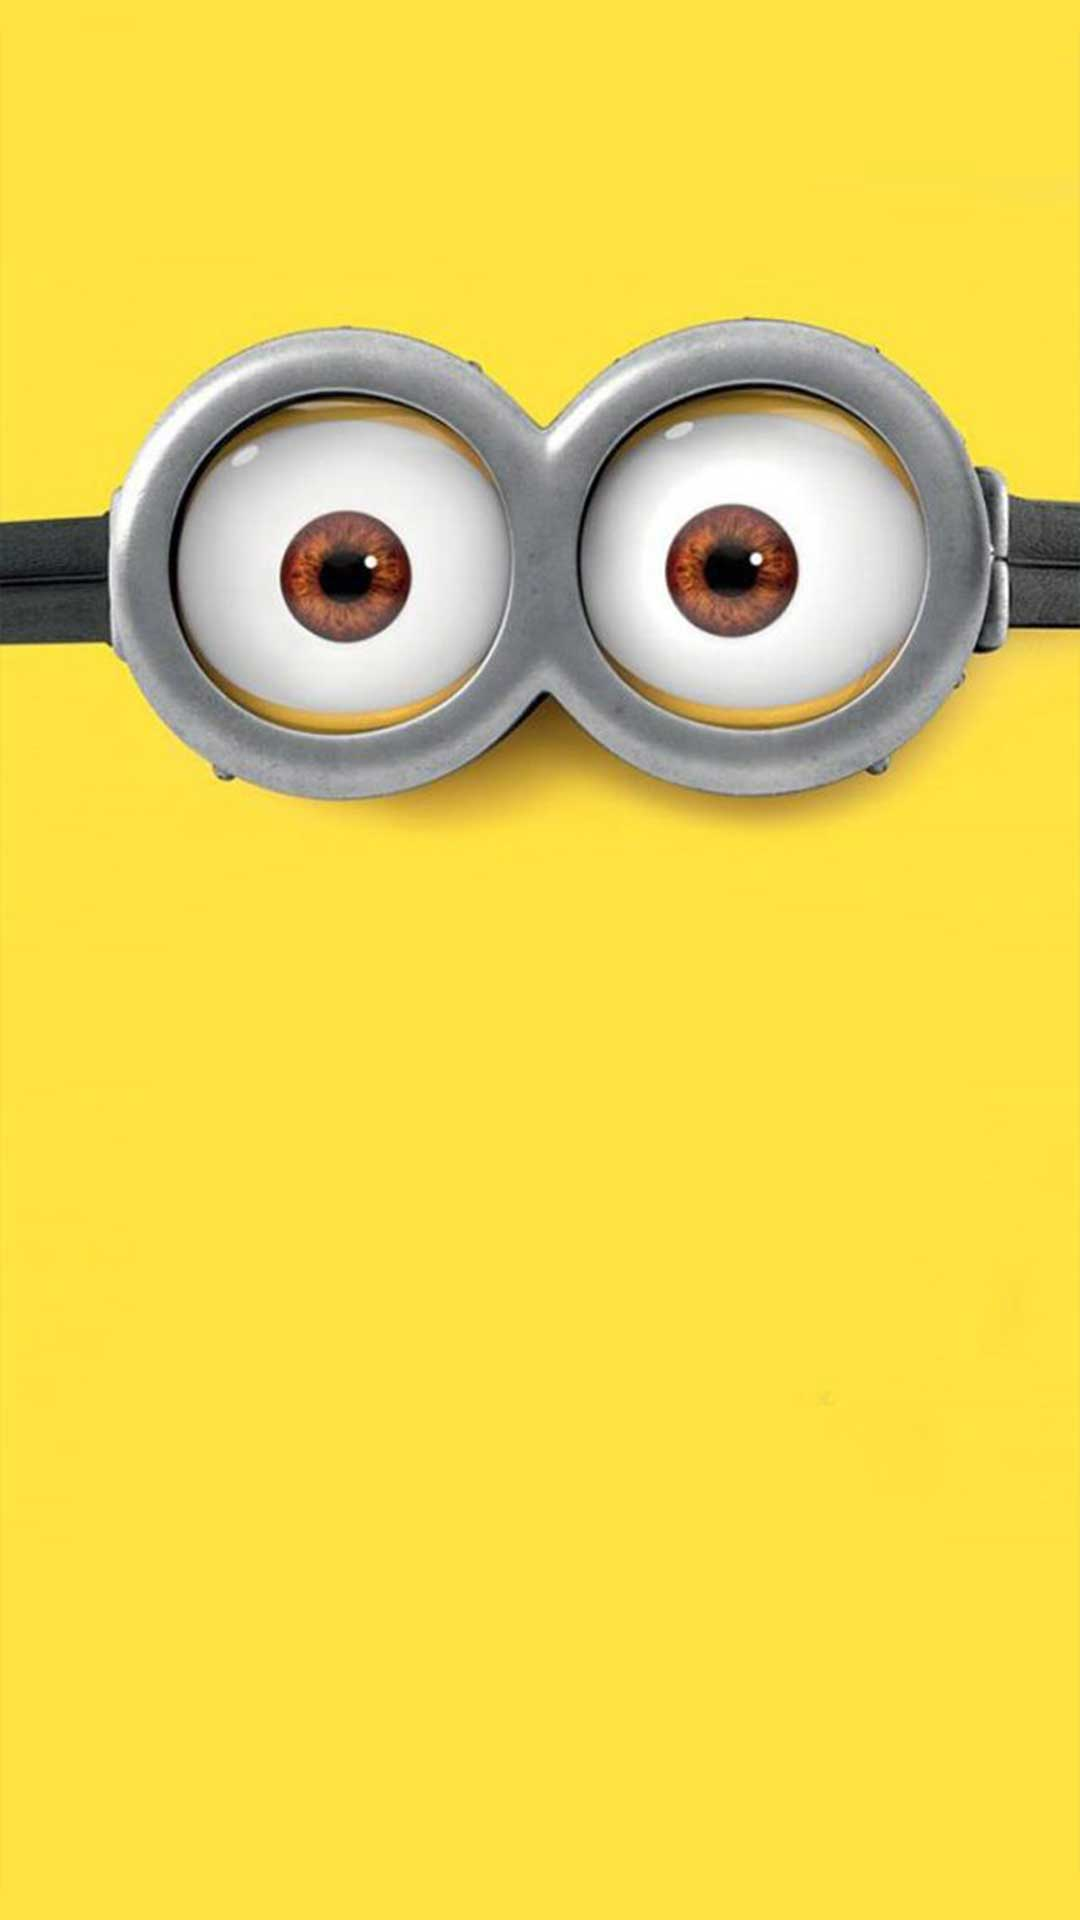 Minions 3D Iphone Wallpaper resolution 1080x1920